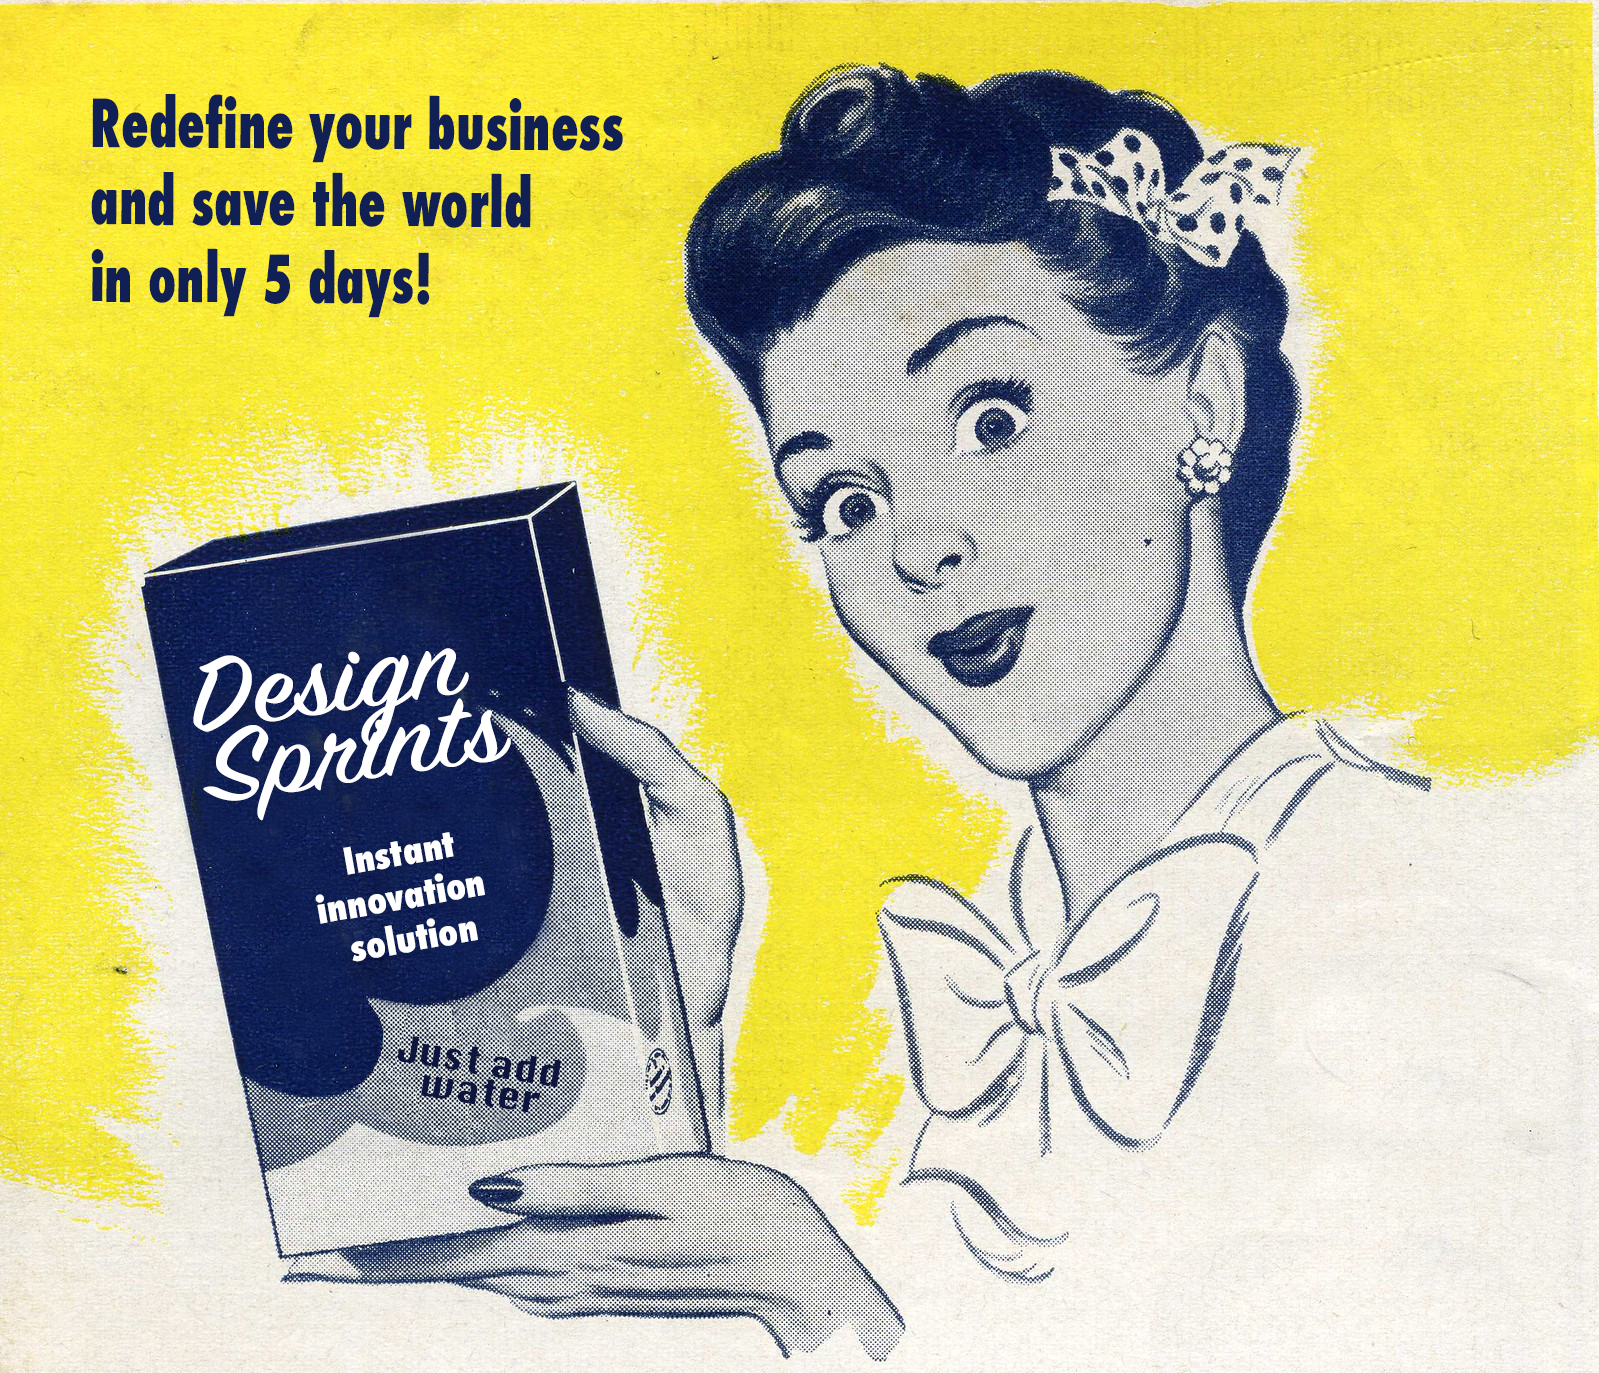 Old commercial of a washing powder edited to promote Design sprints with an ironic statement about Design sprints